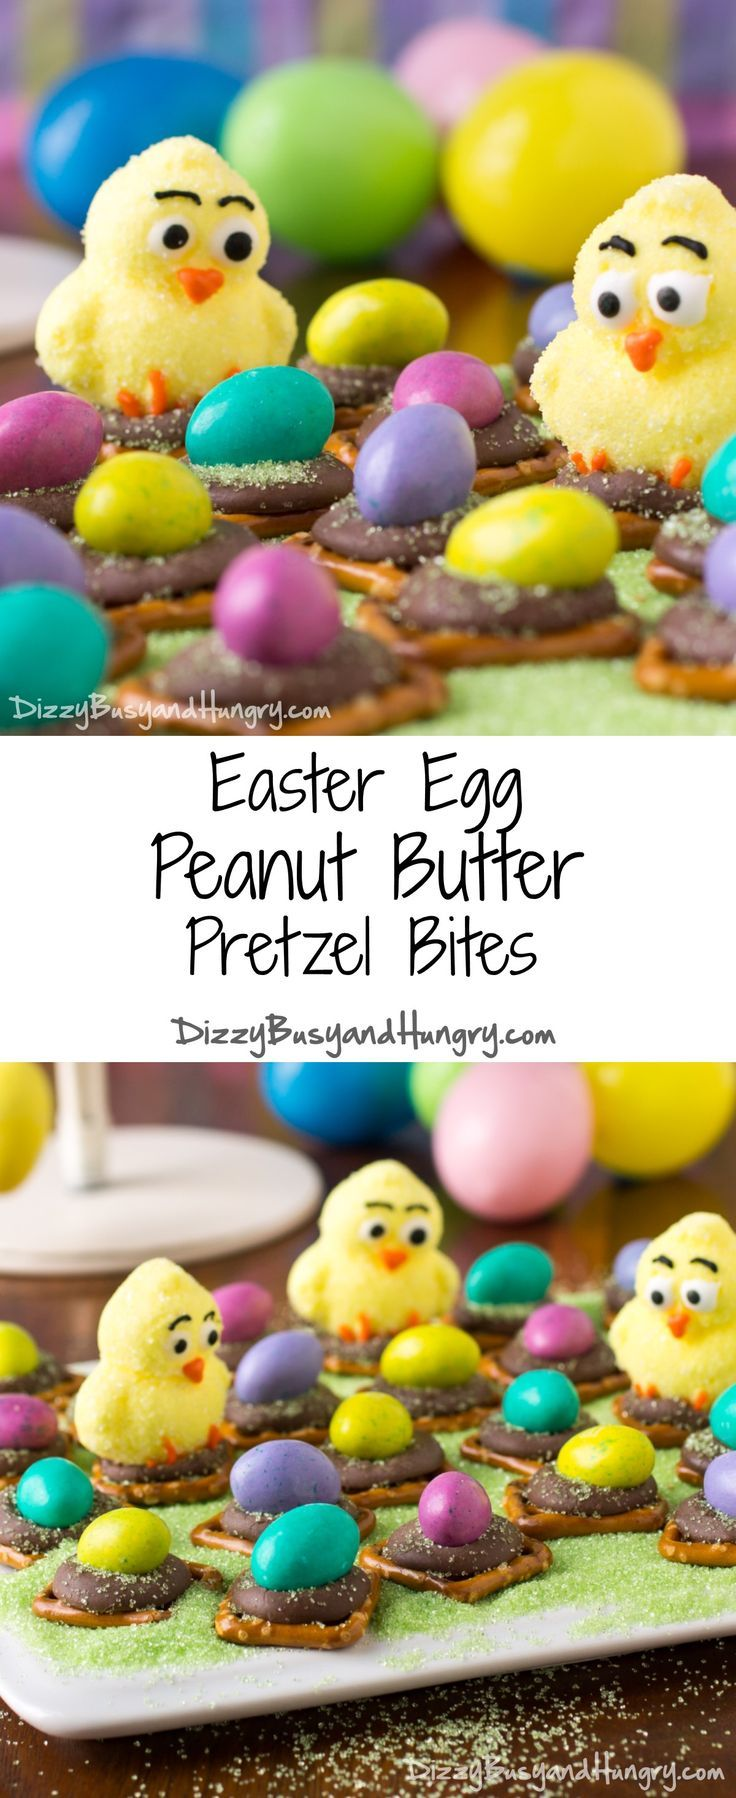 Easter Egg Peanut Butter Pretzel Bites   DizzyBusyandHungry.com - Cute and easy Easter treat that will delight kids and adults alike! #easter #recipes #desserts #eastereggs